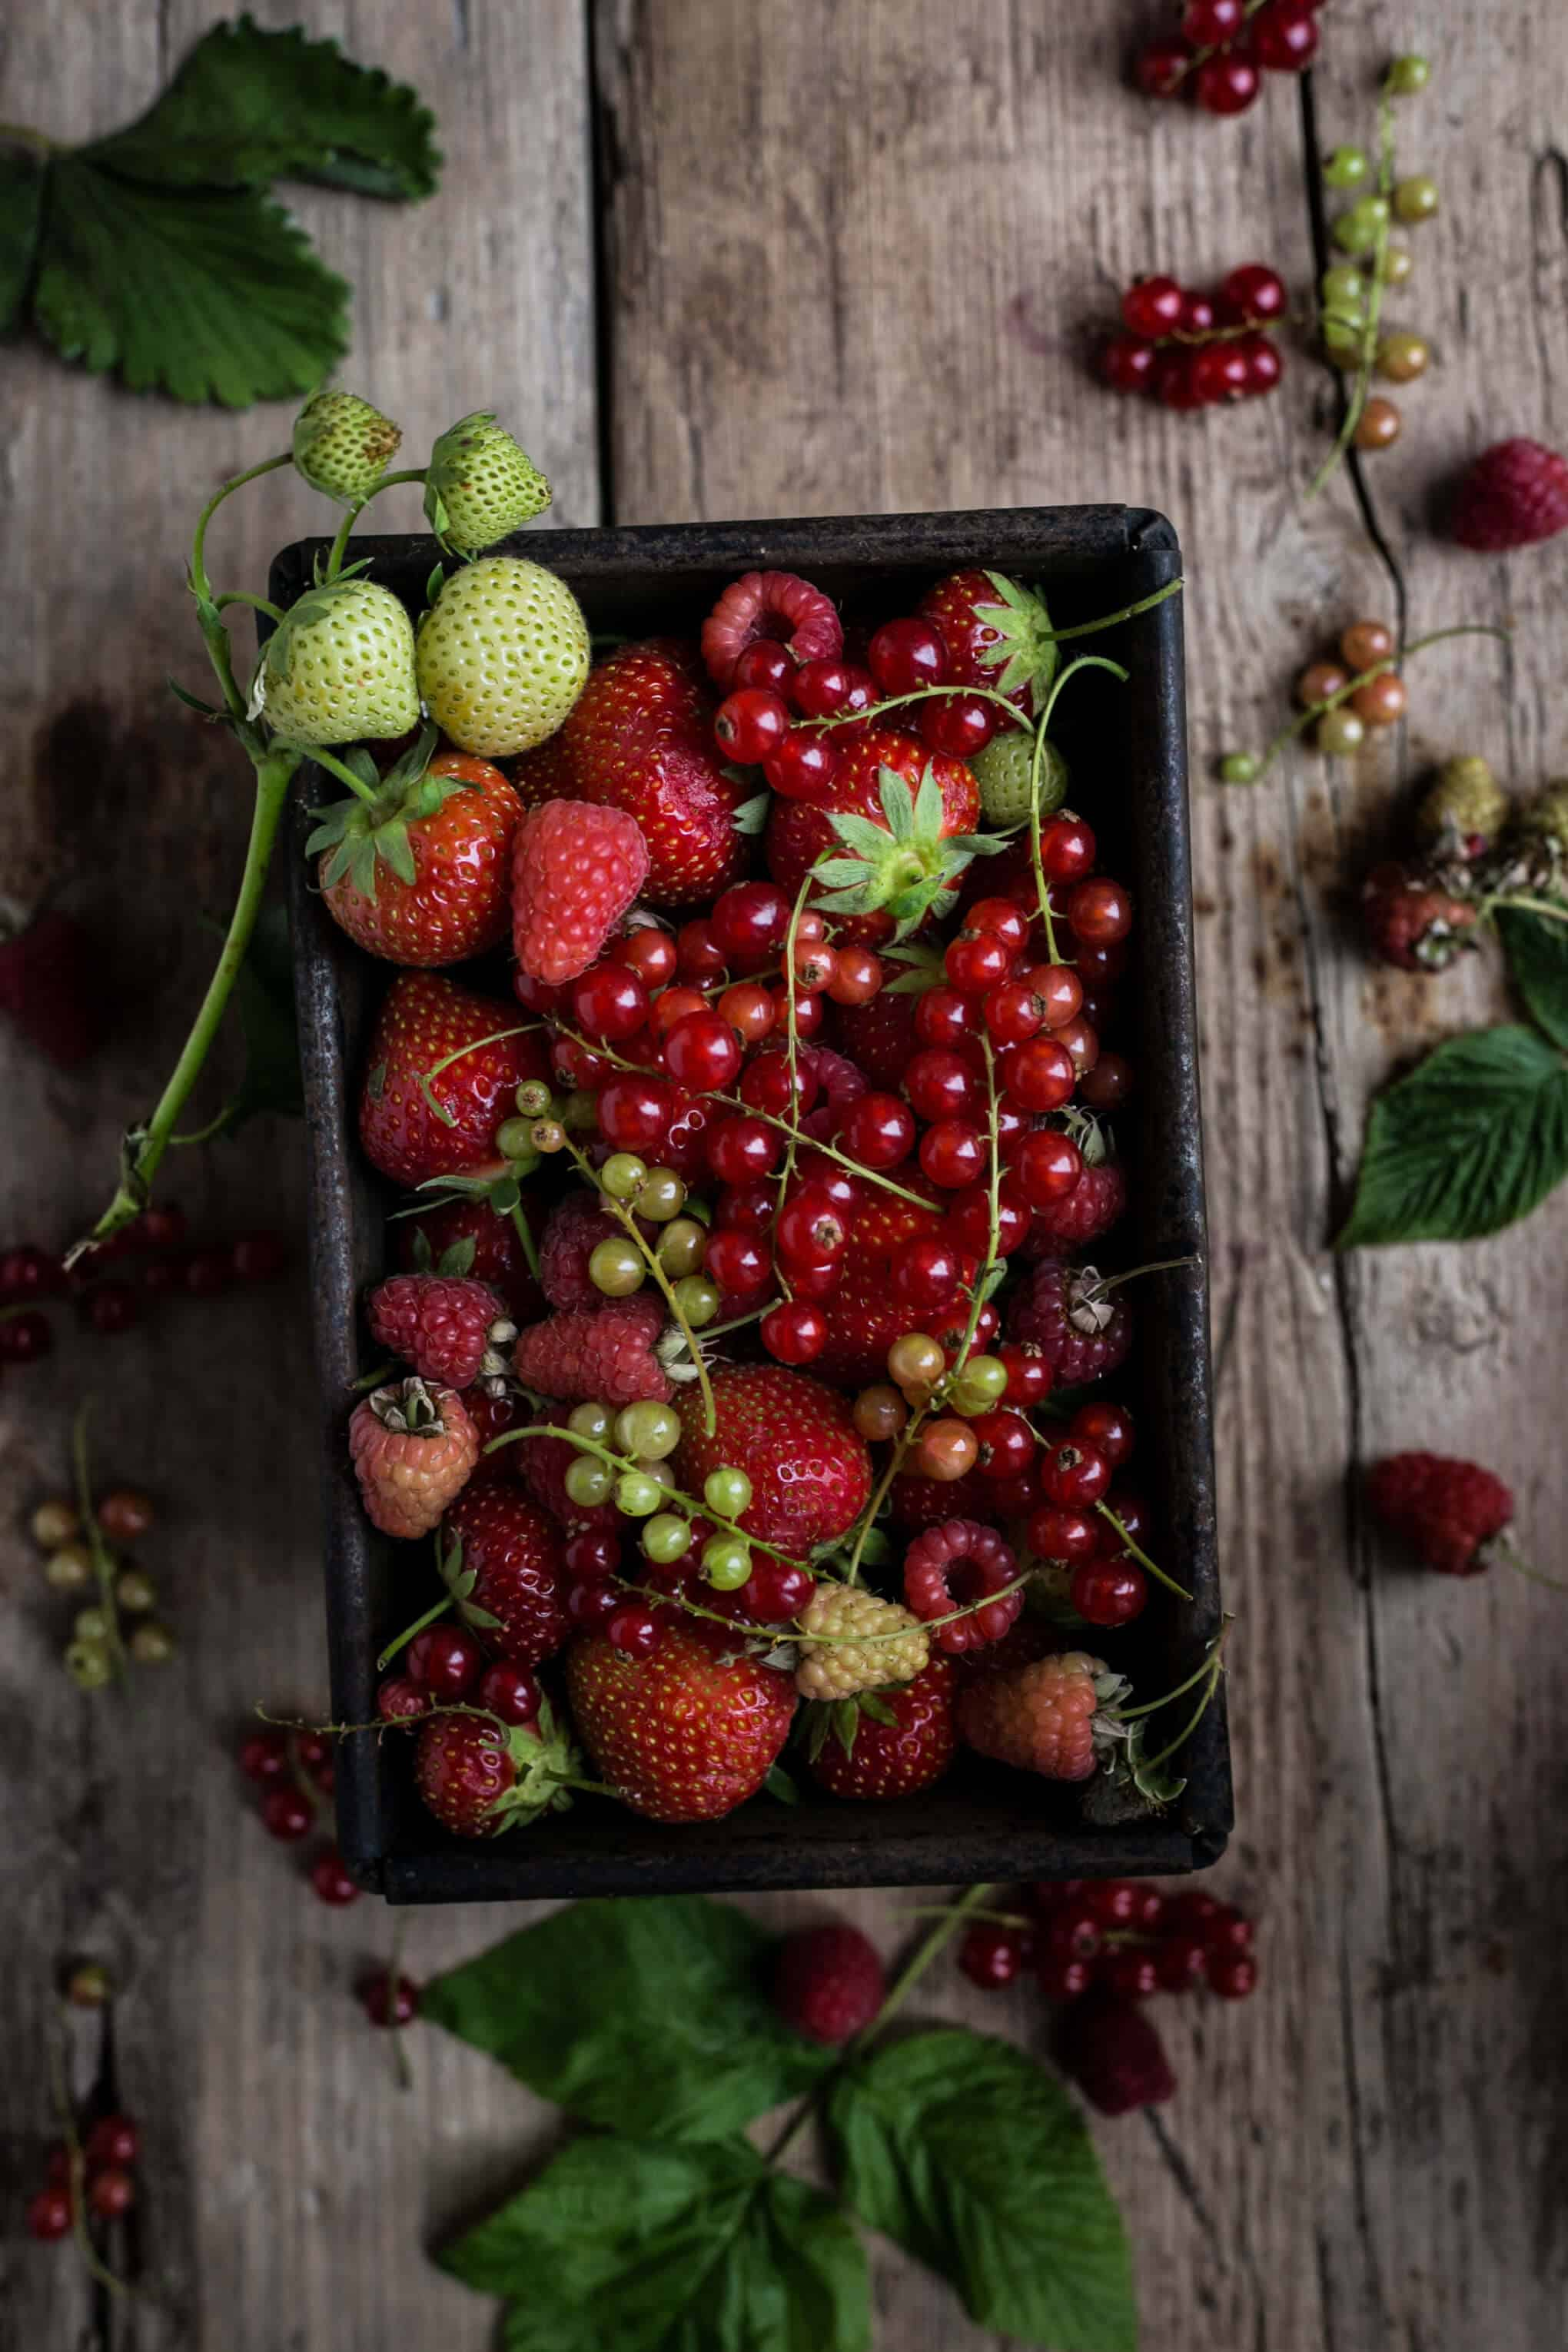 Summer Berries | Food Photography Tips For Beginners- Bonus Material! Sign up now and receive a mini- series full of handy tips! | via @annabanana.co